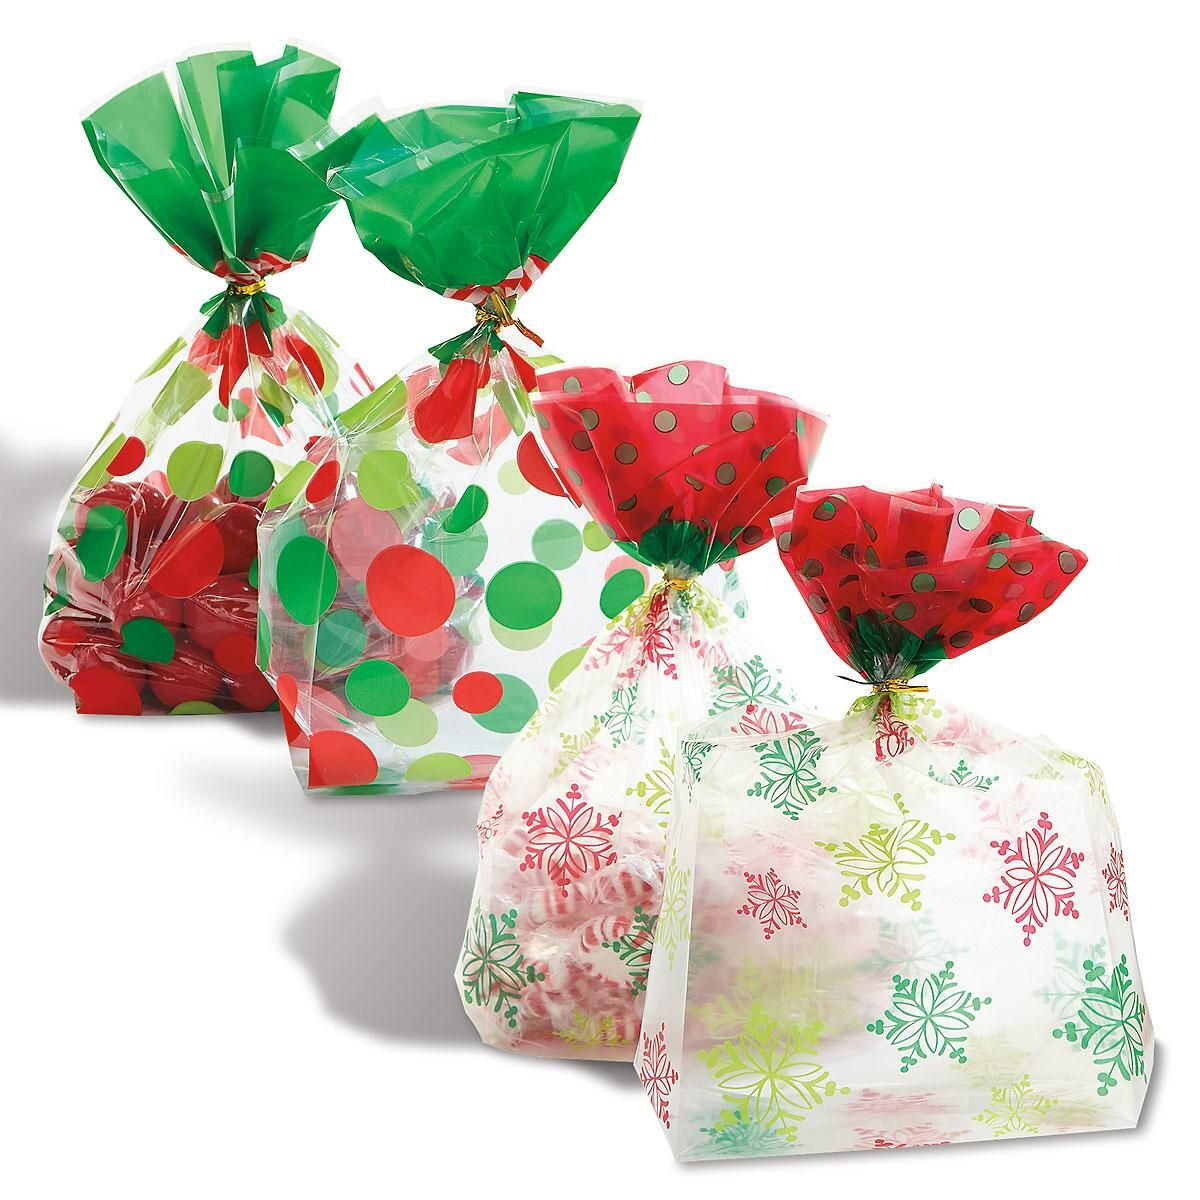 Christmas Cello Bags with Ties